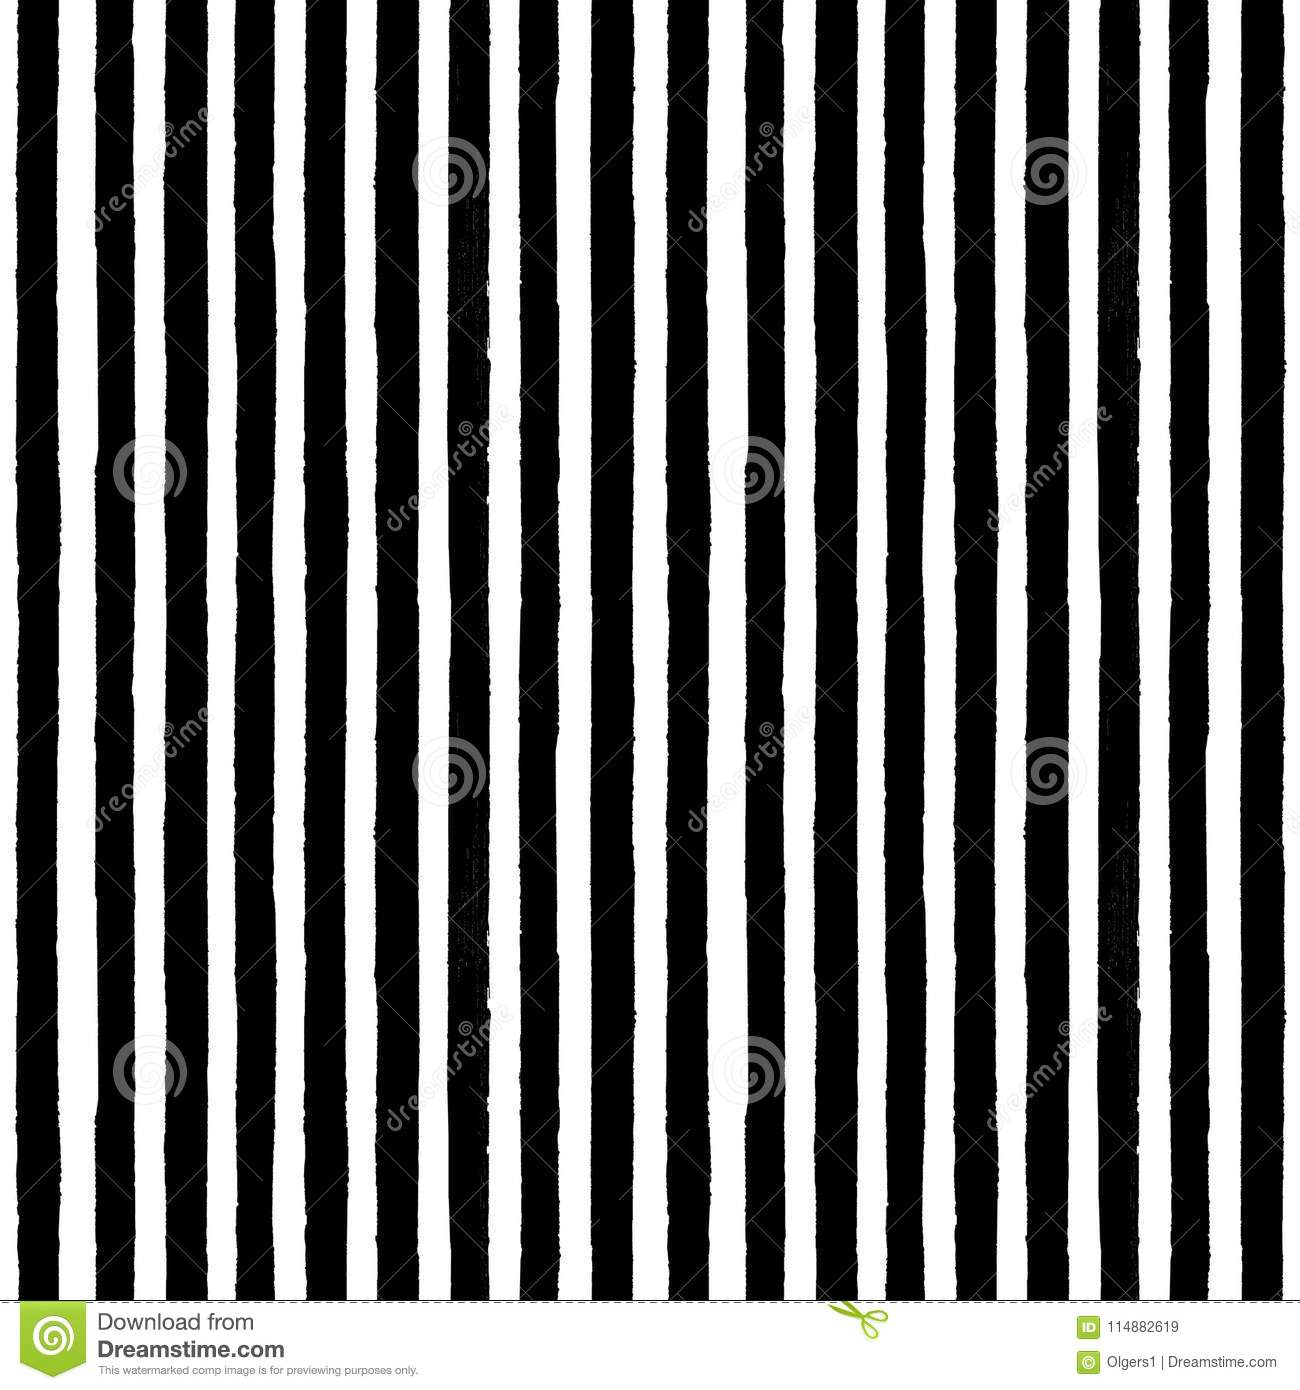 40d87f4150d Vintage black and white stripe background. Old aged paper with ink hand  drawn striped endless pattern. Vertical trendy seamless texture.